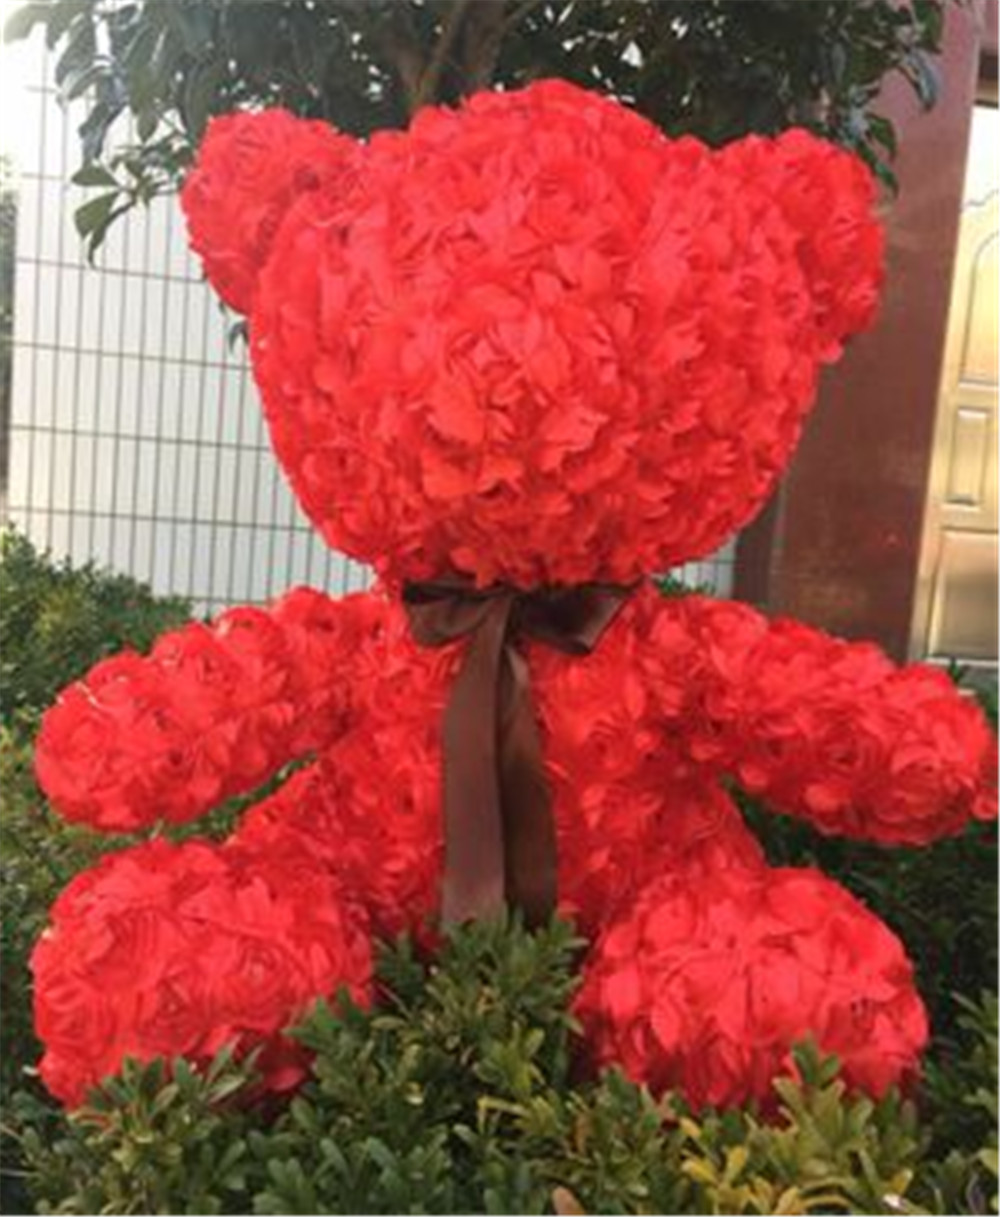 Fancytrader Red Rose Teddy Bear Toy Nice Quality Big Bear Teddy Doll 70cm 28inch for Kids Adults Gifts3